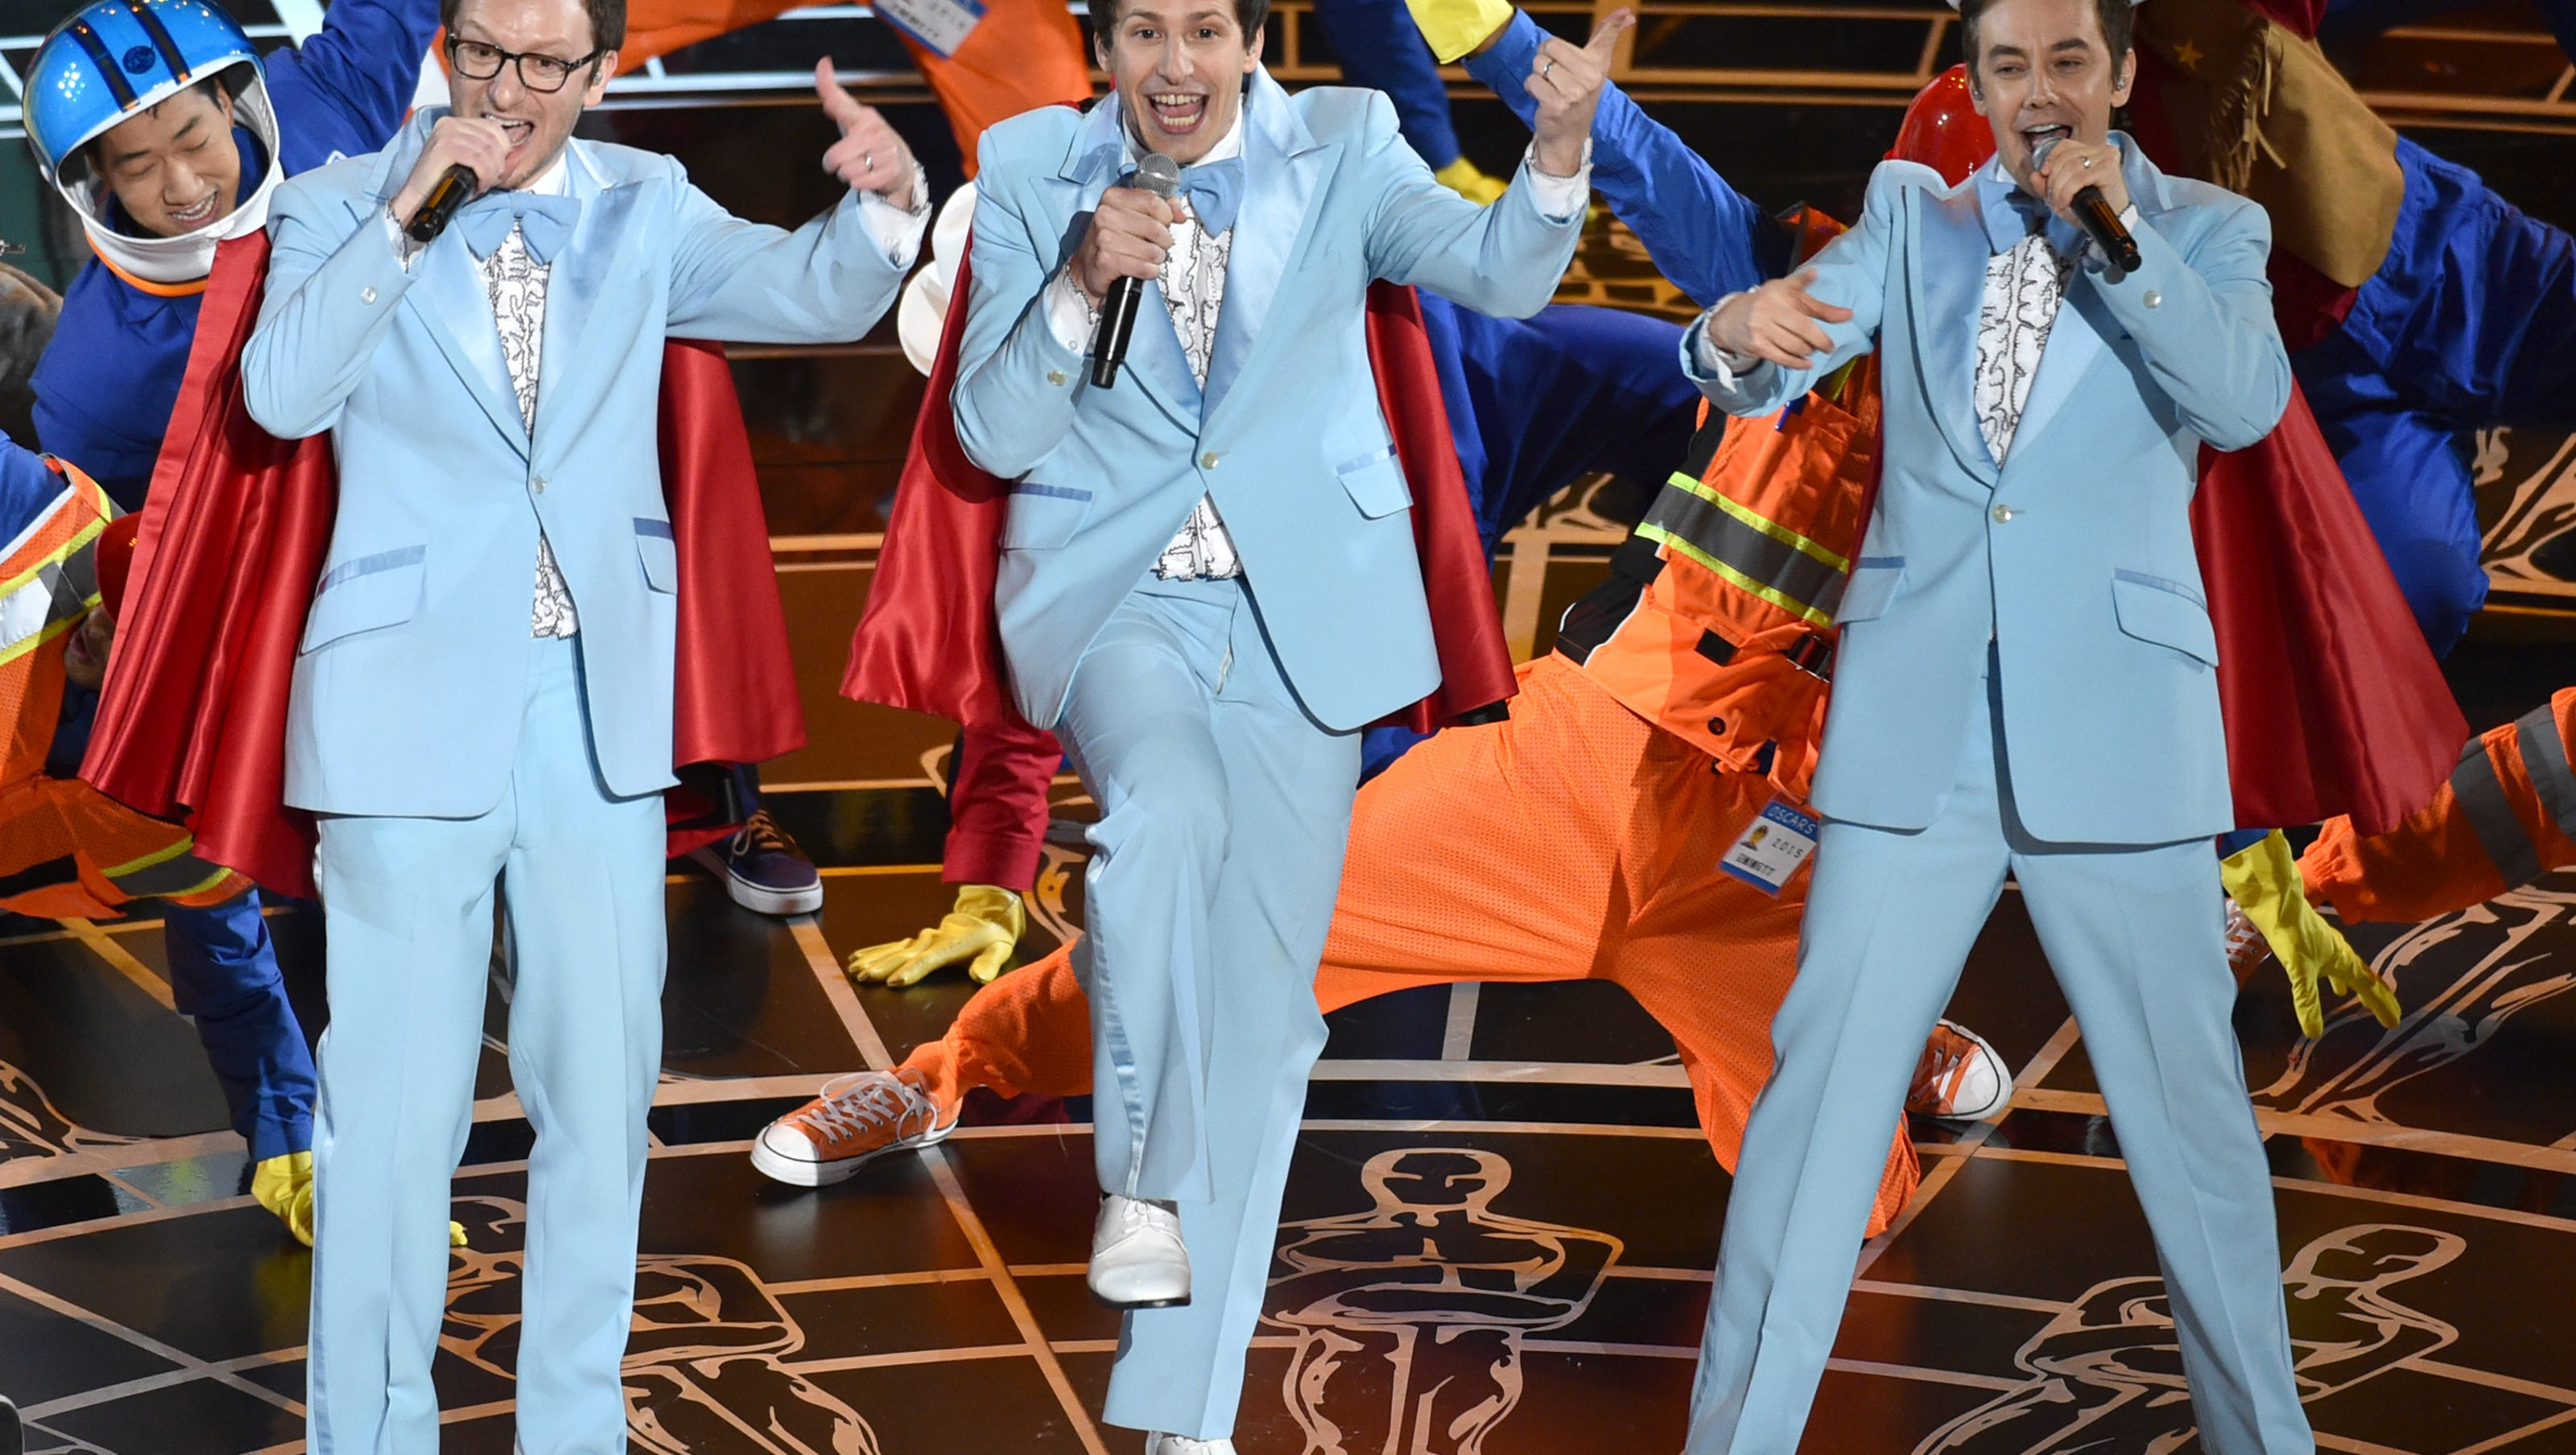 Lonely no more: Lonely Island headed to Fox Theatre on first tour